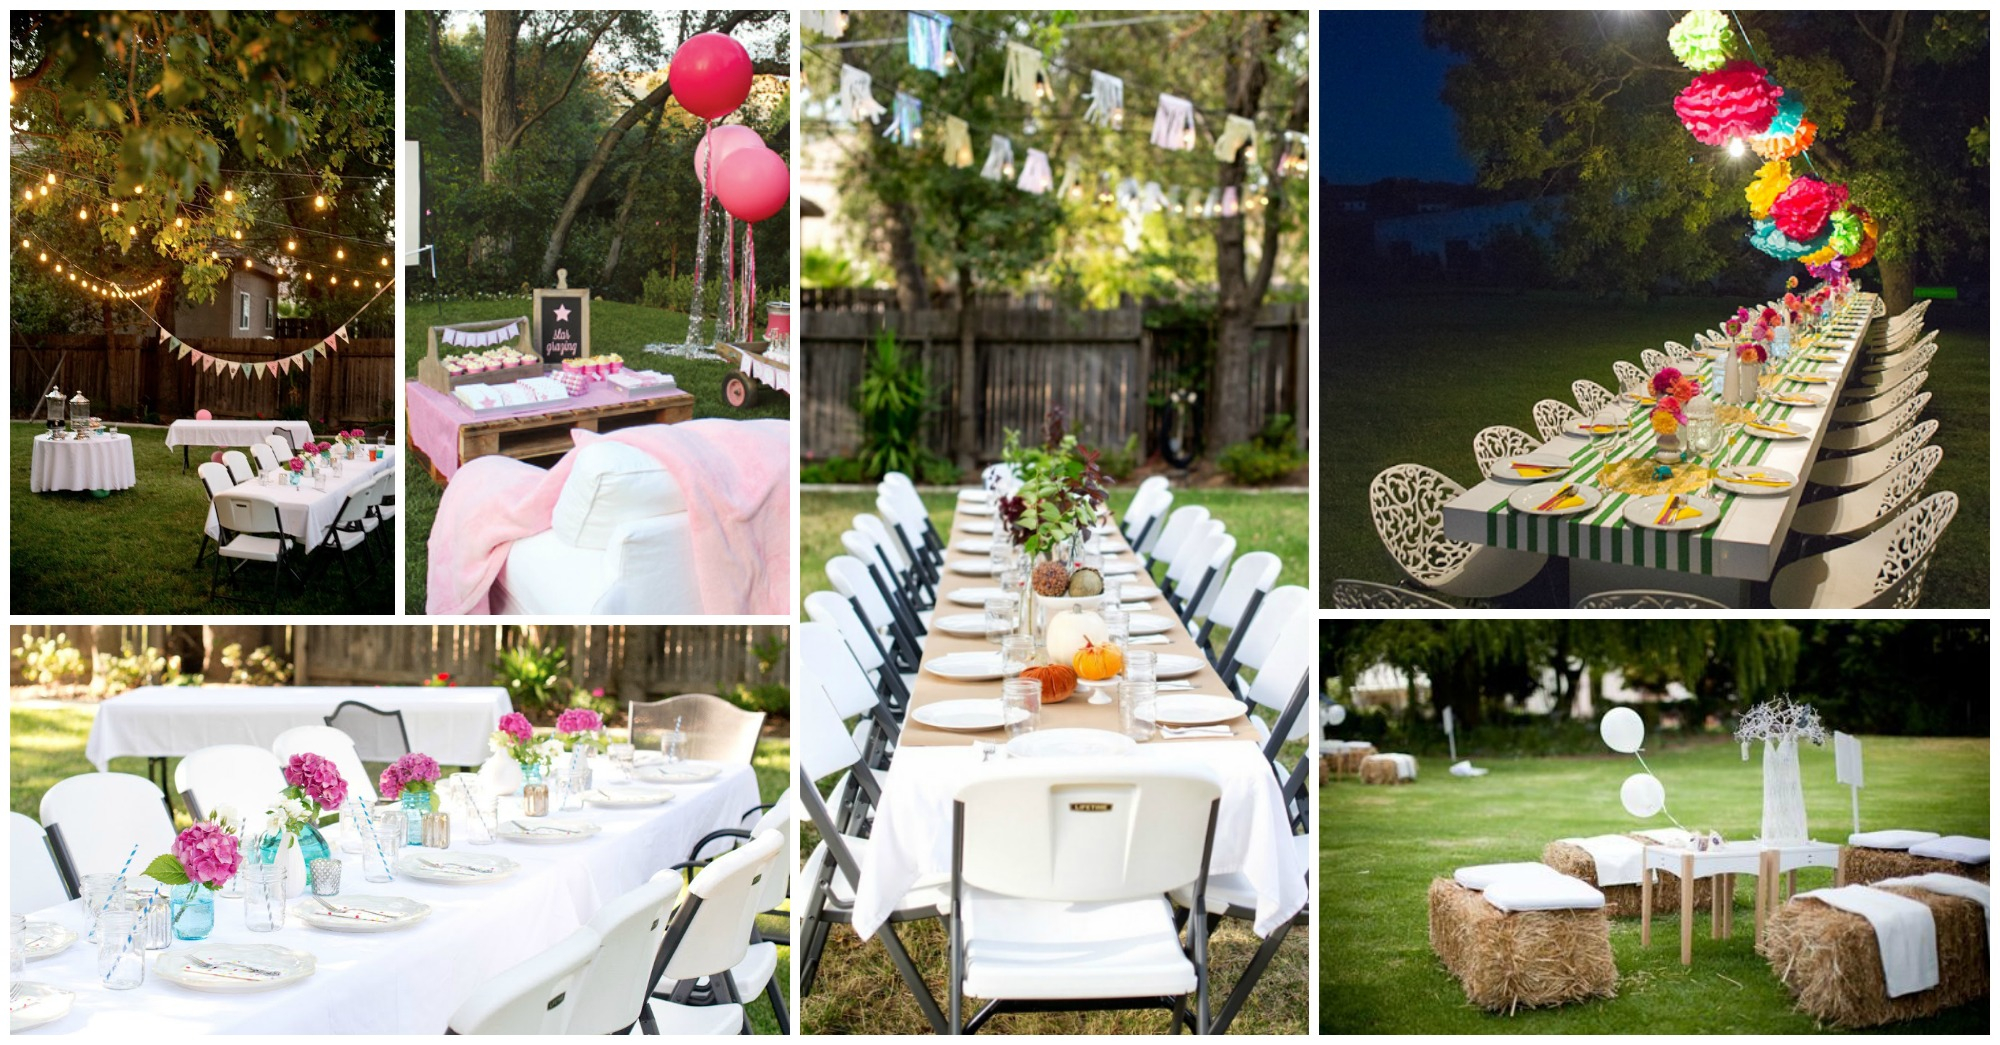 Backyard Party Decorations For Unforgettable Moments in Decorating Ideas For Backyard Party